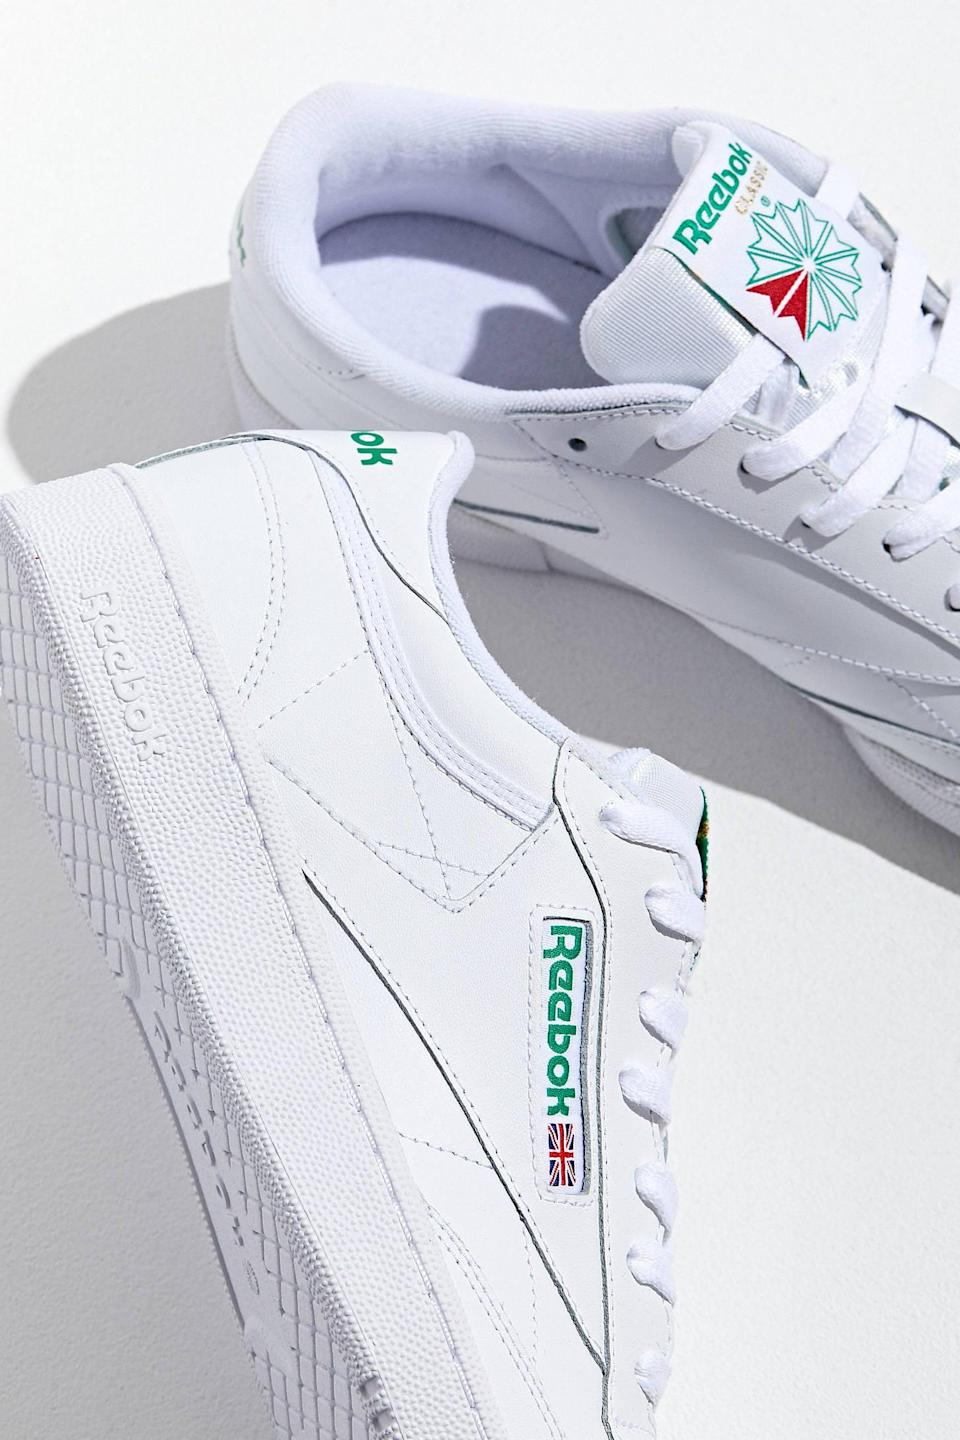 """<p><span>Reebok Club C 85 Sneakers</span> ($70)</p> <p>""""If like me, you can't stop buying white sneakers, may I suggest you add these Reebok vintage ones to your collection? They are so comfortable and versatile."""" - Alessandra Foresto, deputy editor</p>"""